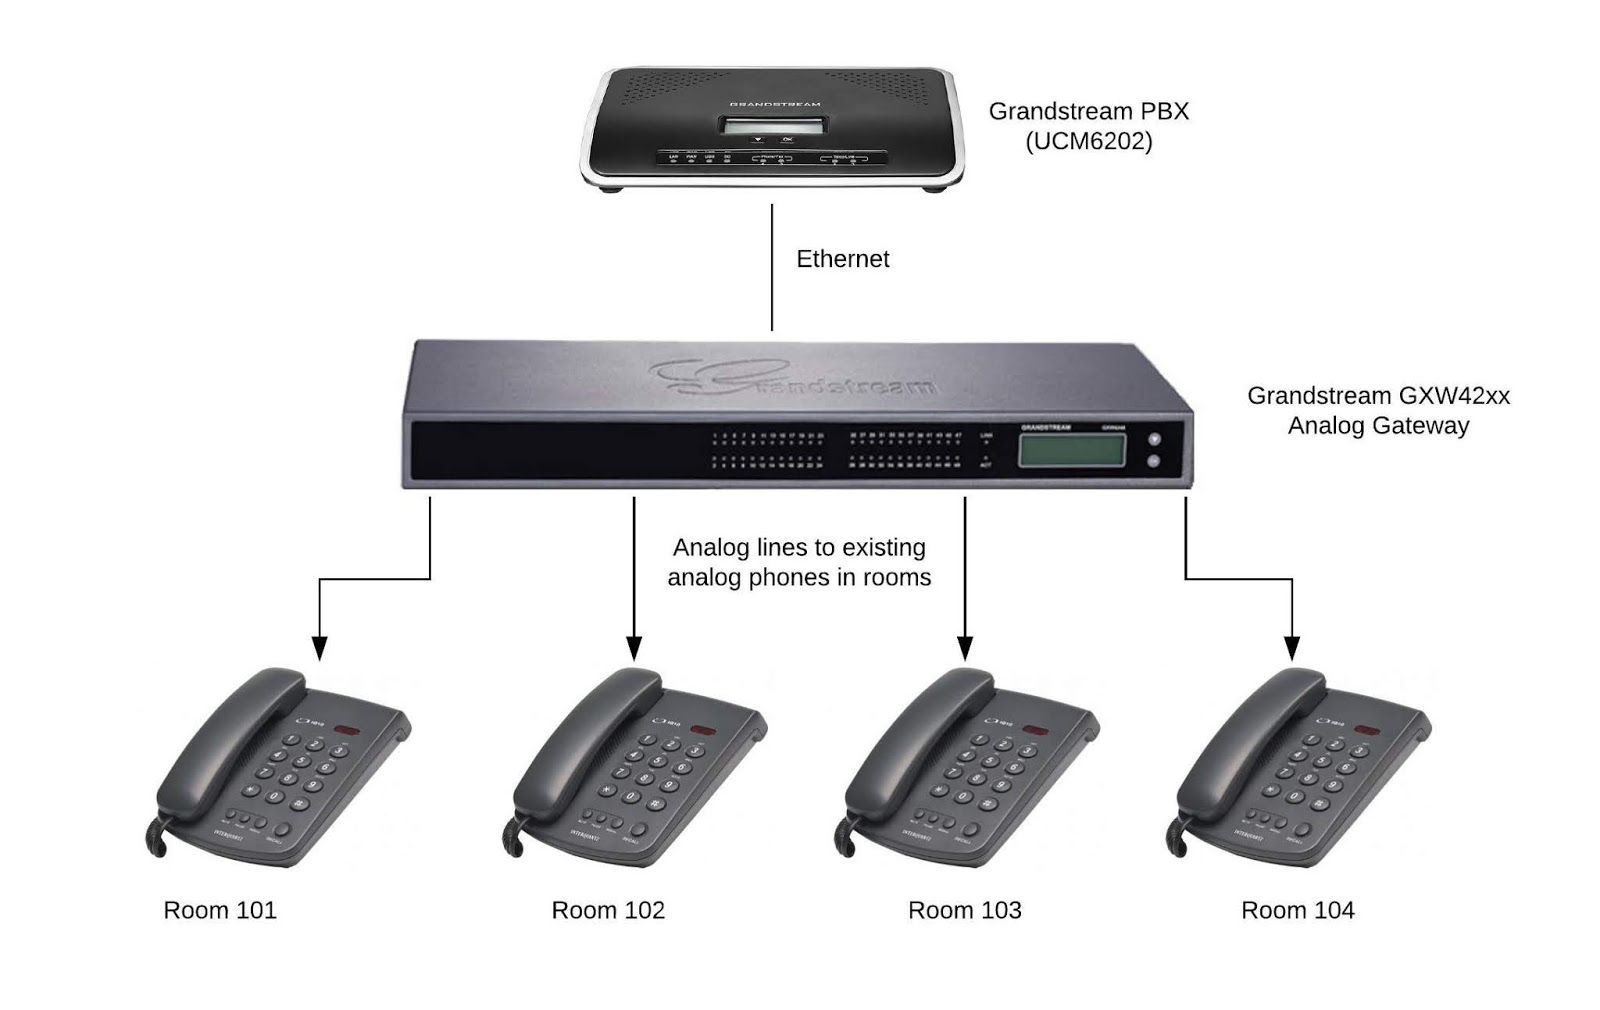 Here Is An Example Of How You Can Upgrade Your Existing Analog System To VoIP Without Replacing The Phones In Each Room Saving On Hardware